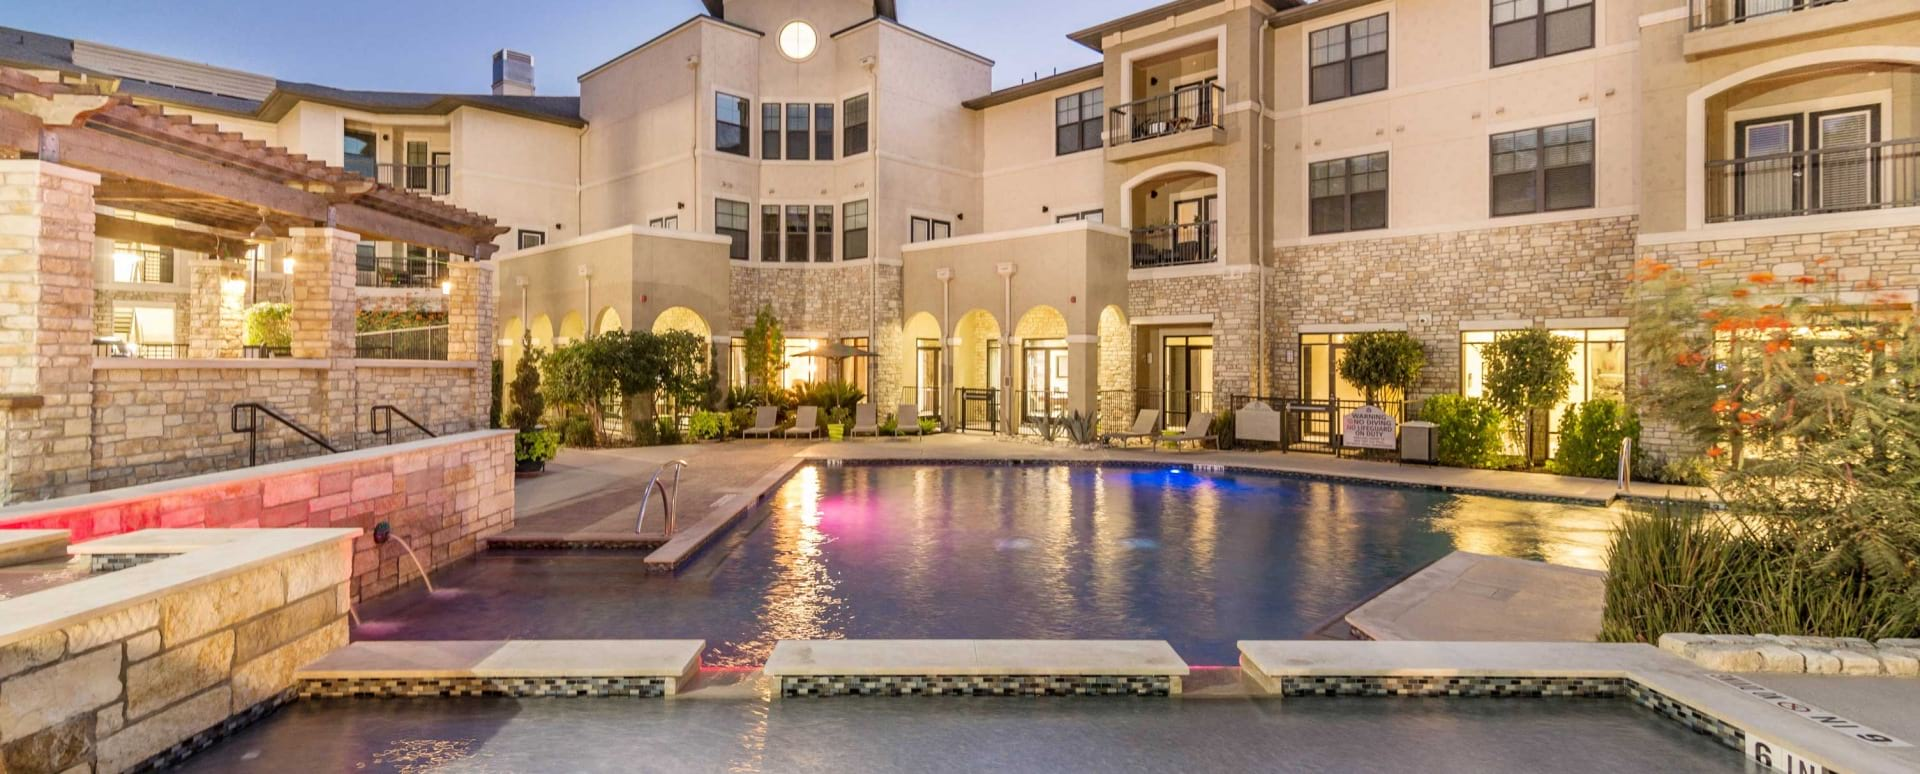 Resort-Style Pool and Sun Deck at Cortland Brackenridge Apartments